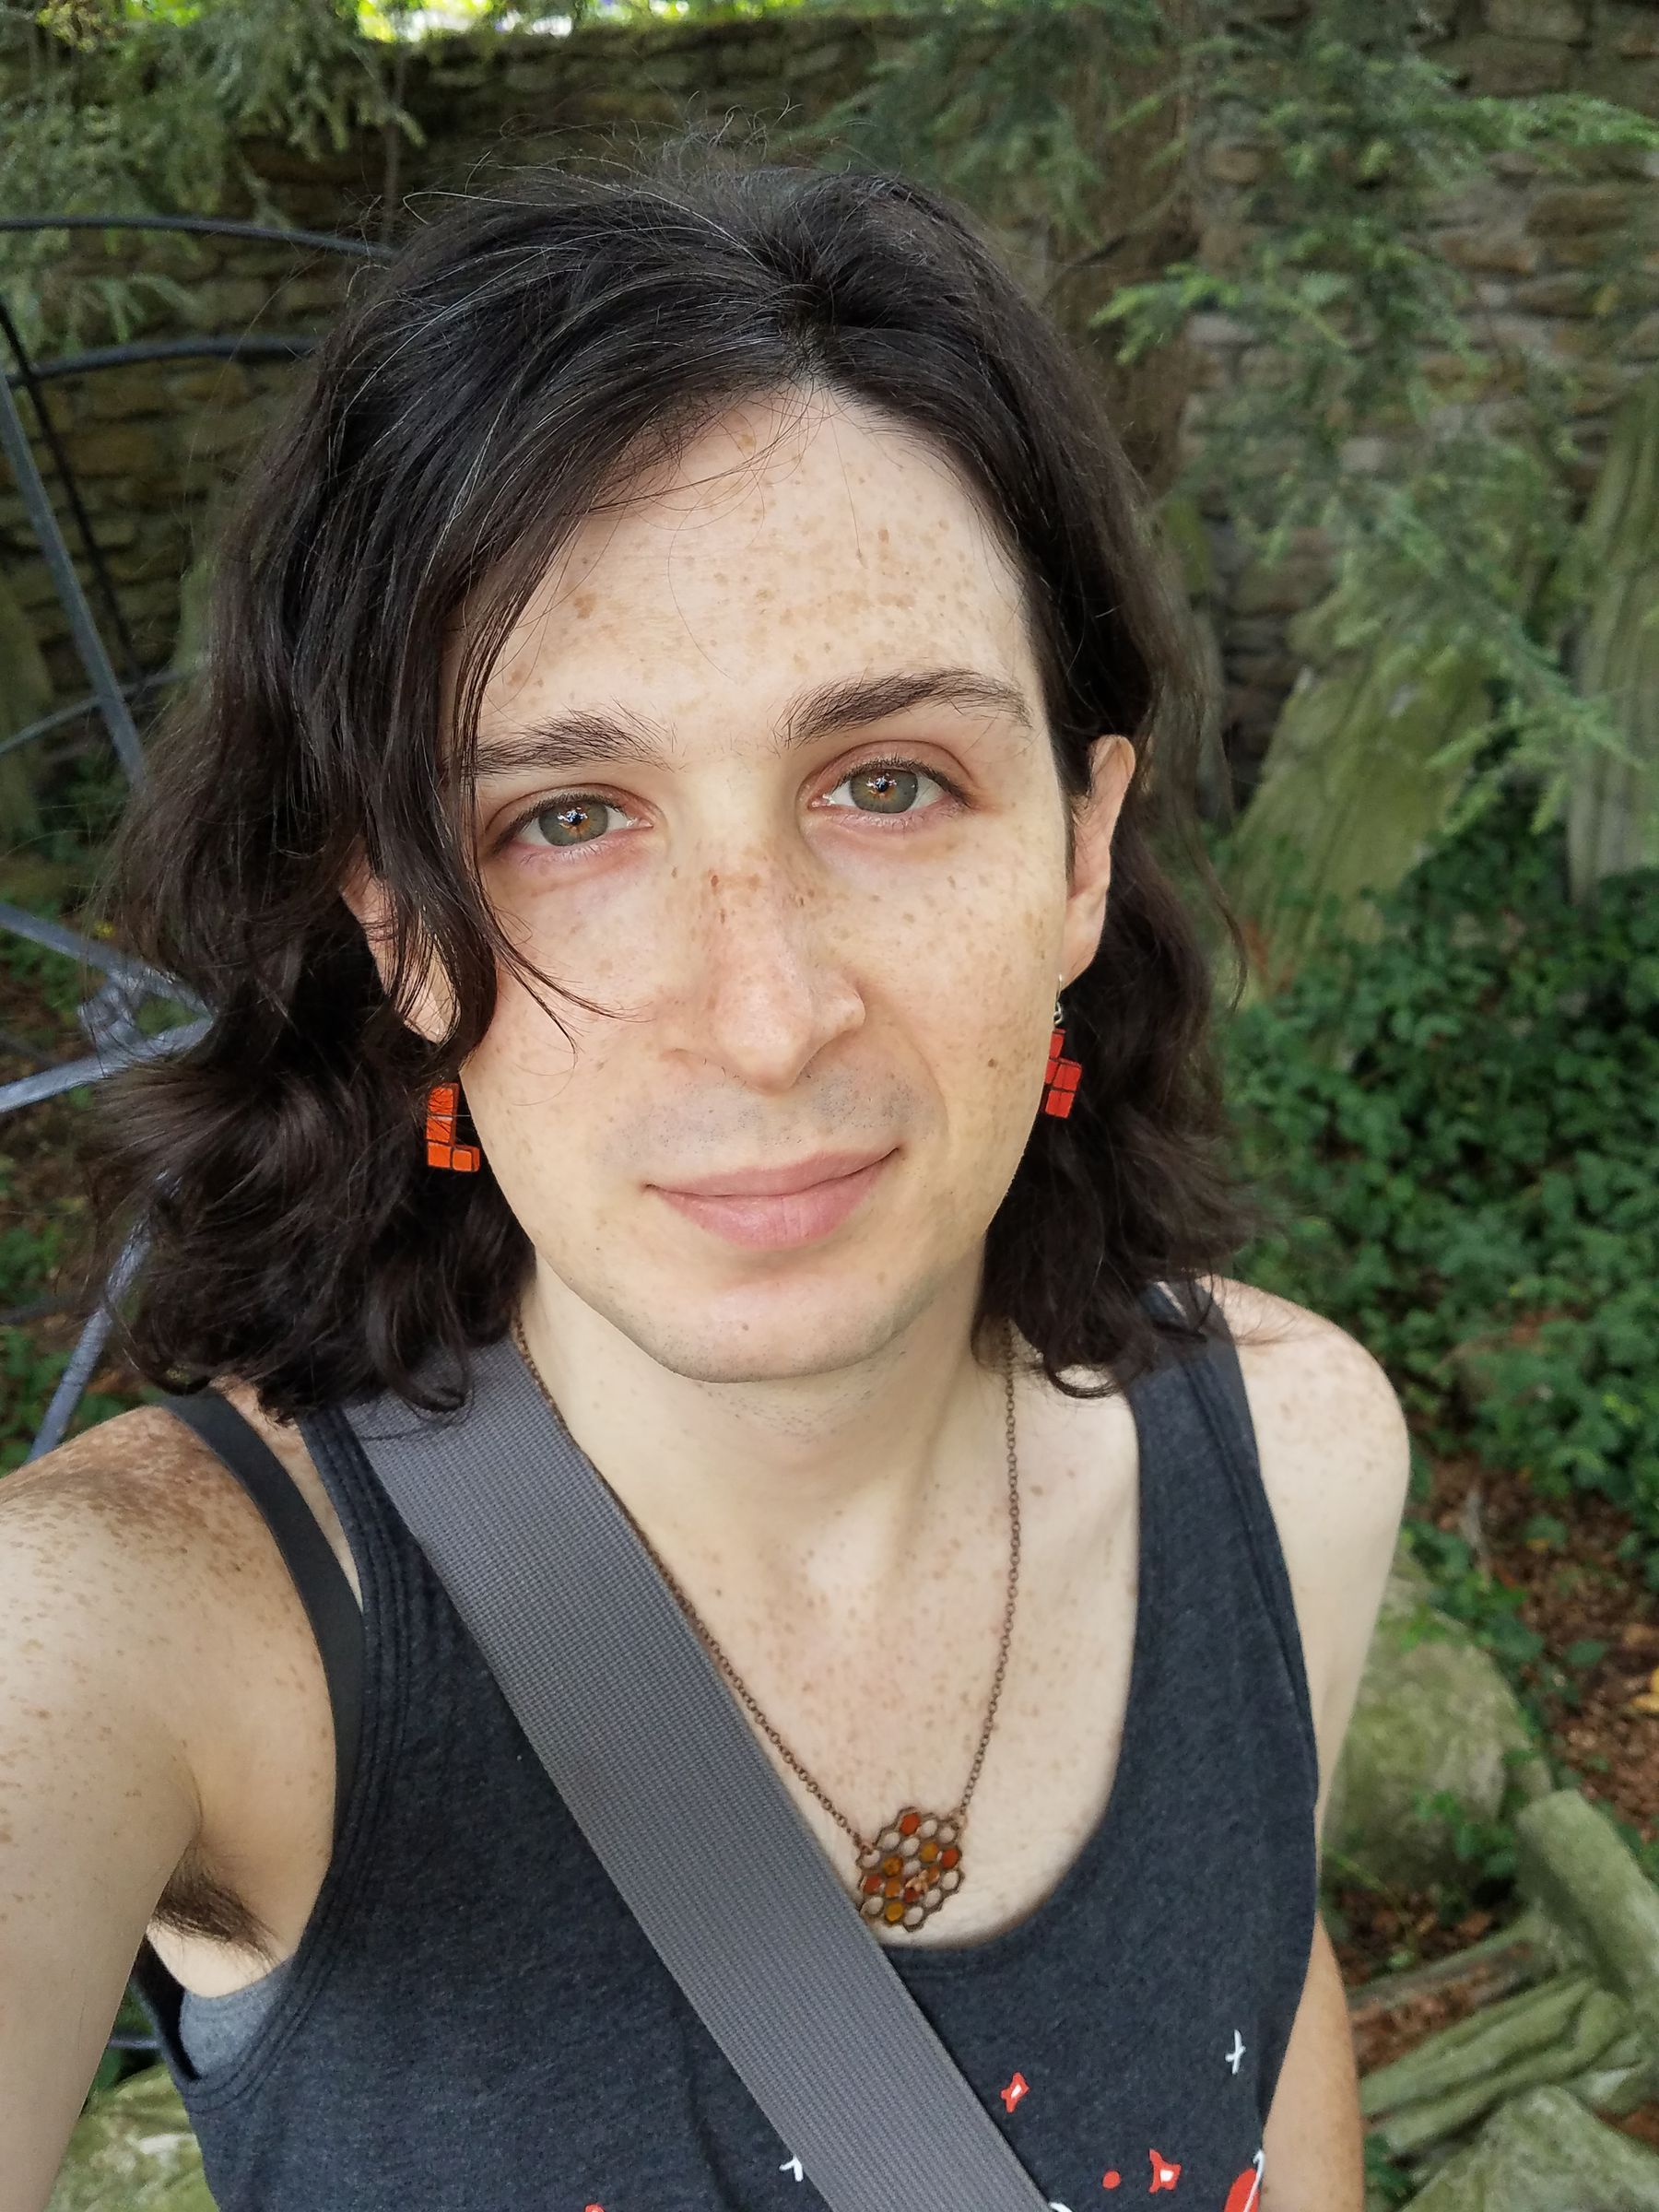 A selfie of me from my chest up, wearing a tank top and orange tetronimo earrings, taken in a walled-in corner outside the Mattress Factory Museum. Behind me are toppled stone statues covered by creeping plantlife. There is a metal wireframe ball about the diameter of an adult barely visible behind me.